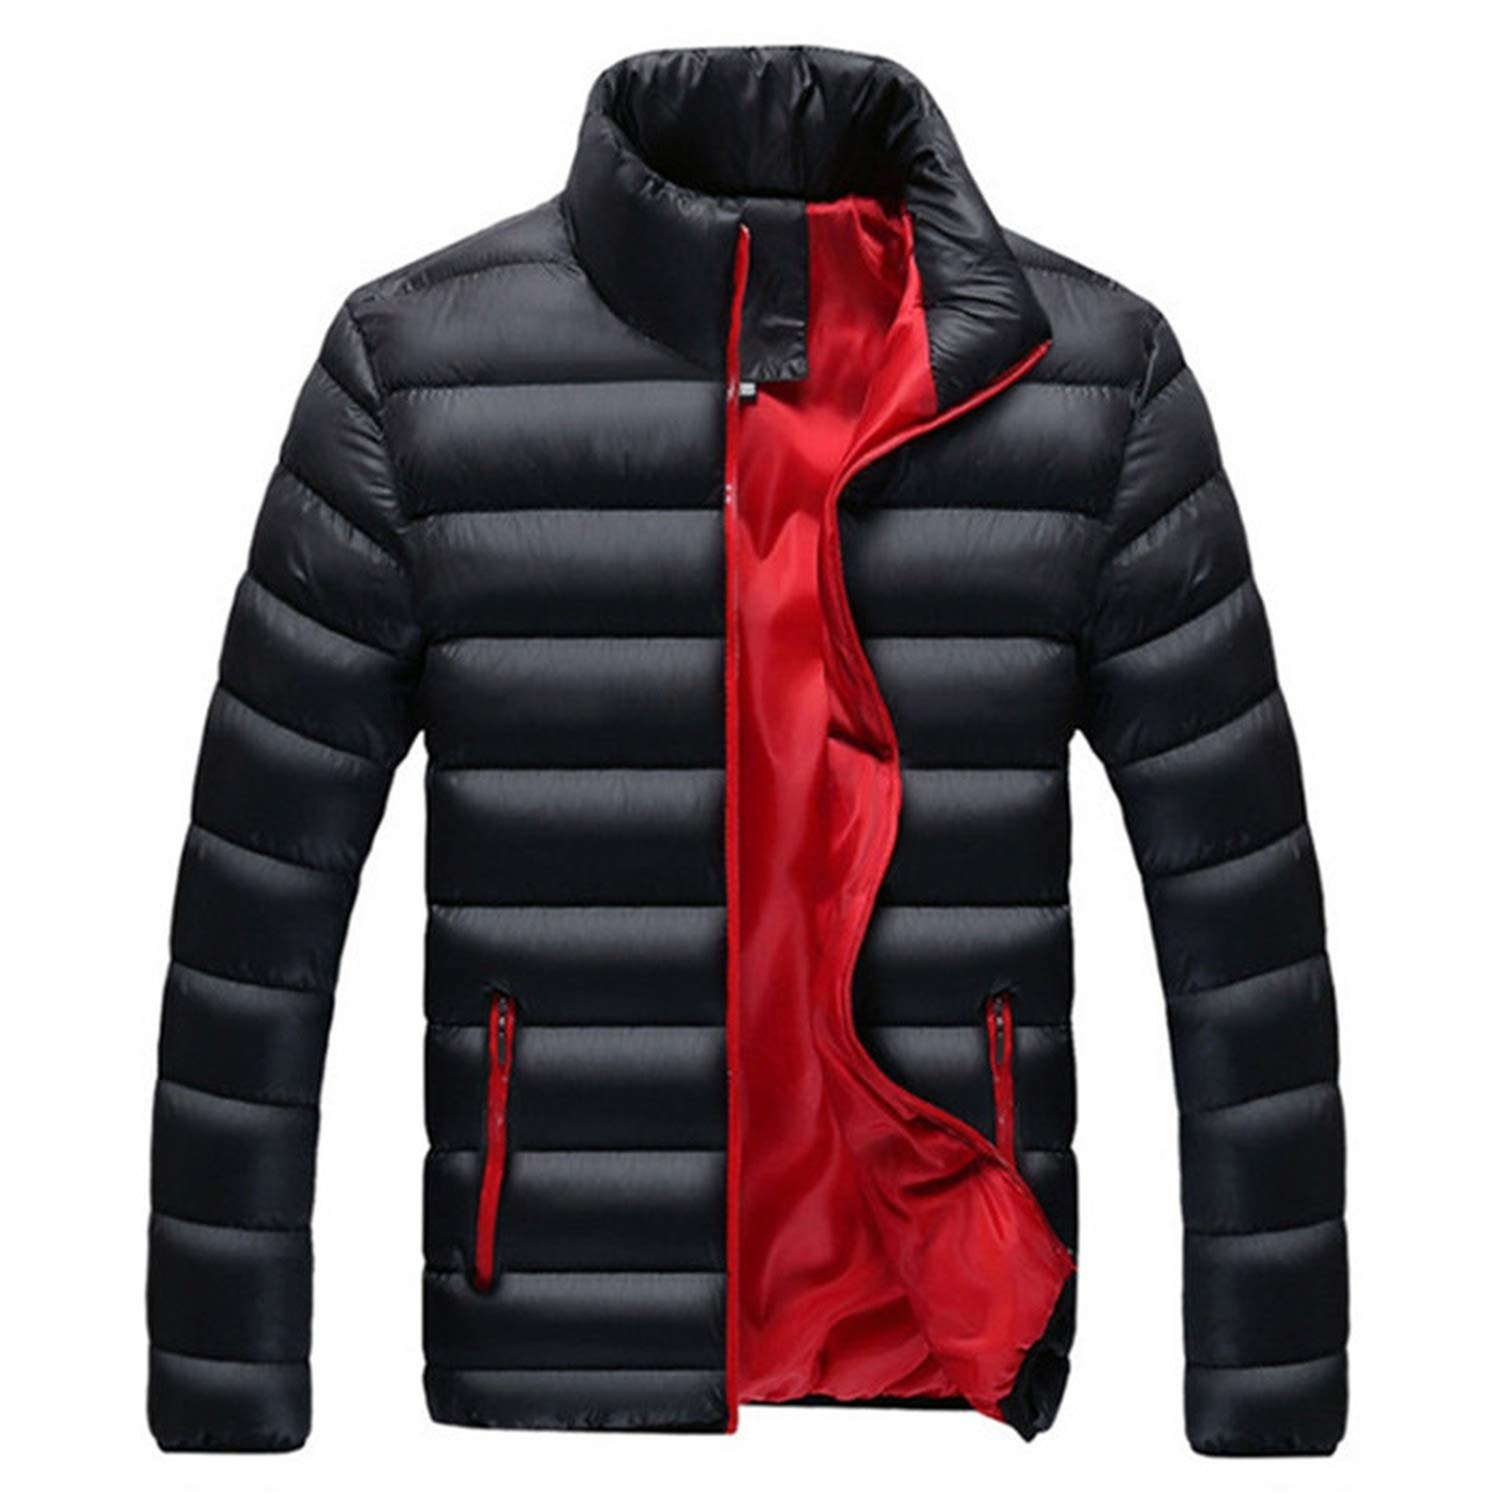 Jacket Men Warm Coat Black Outwear Chaquetas Plumas Hombre ...